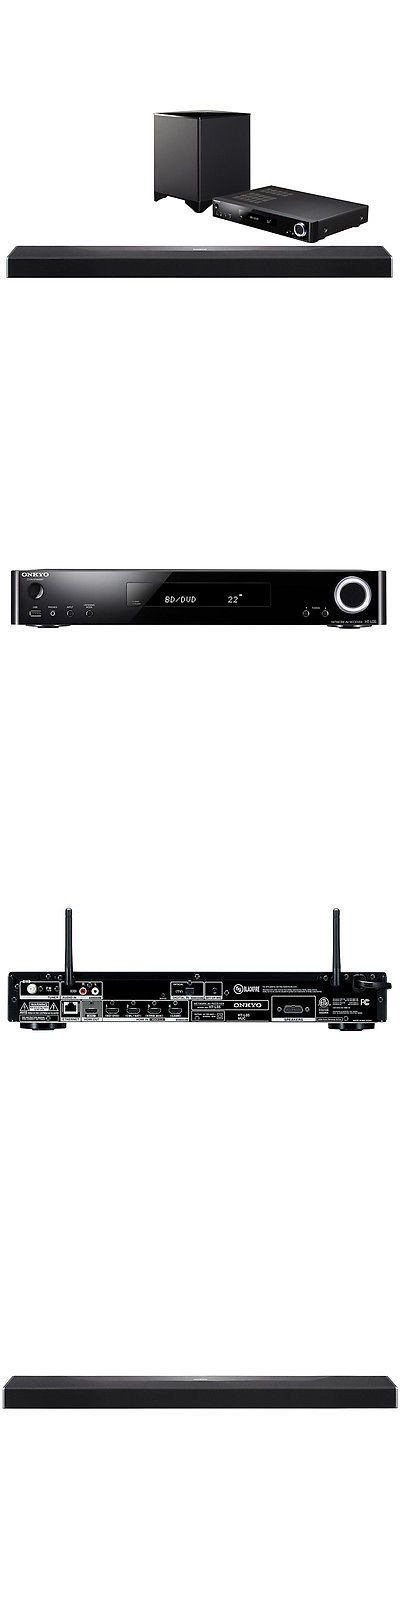 Home Theater Systems: Onkyo Sbt-A500 Object-Based Network Surround ...